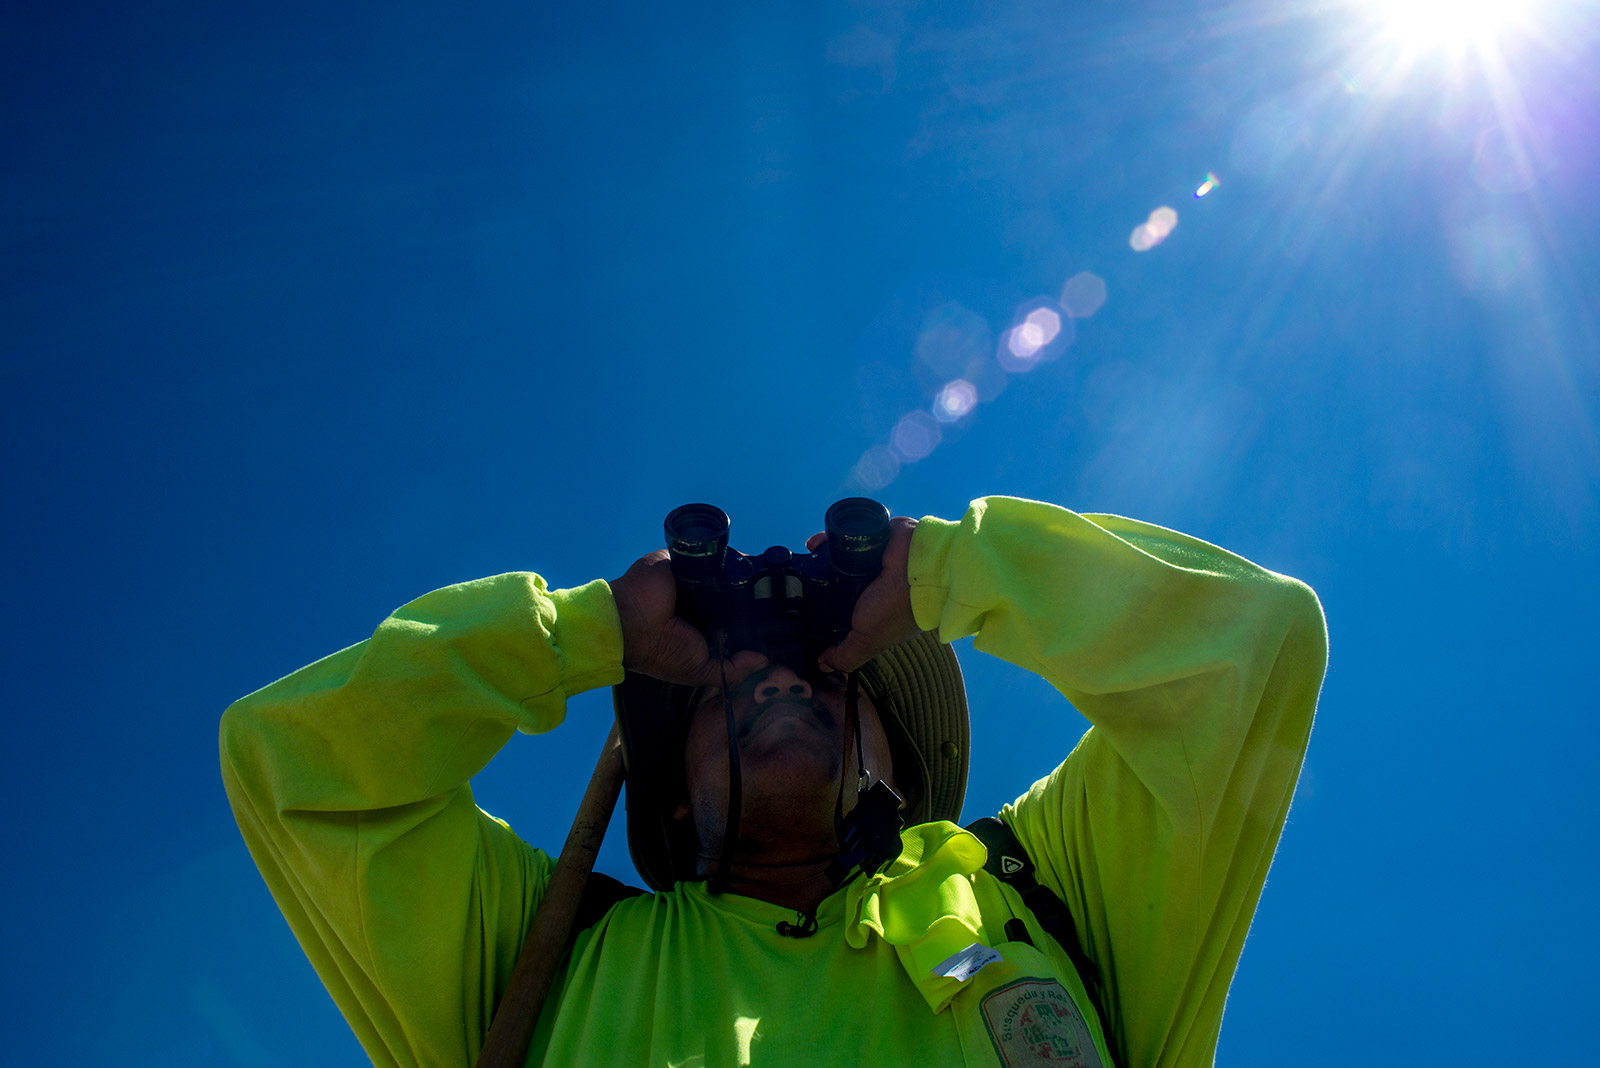 Ely Ortiz peers through his binoculars while scanning the desert along the U.S.-Mexico border in Arizona on Aug. 26, 2017. Wearing a long-sleeve shirt and hat, Ortiz and nearly two dozen volunteers walked through temperatures nearing 120 degrees while searching for missing migrants. <em>(Brandon Quester/inewsource)</em>